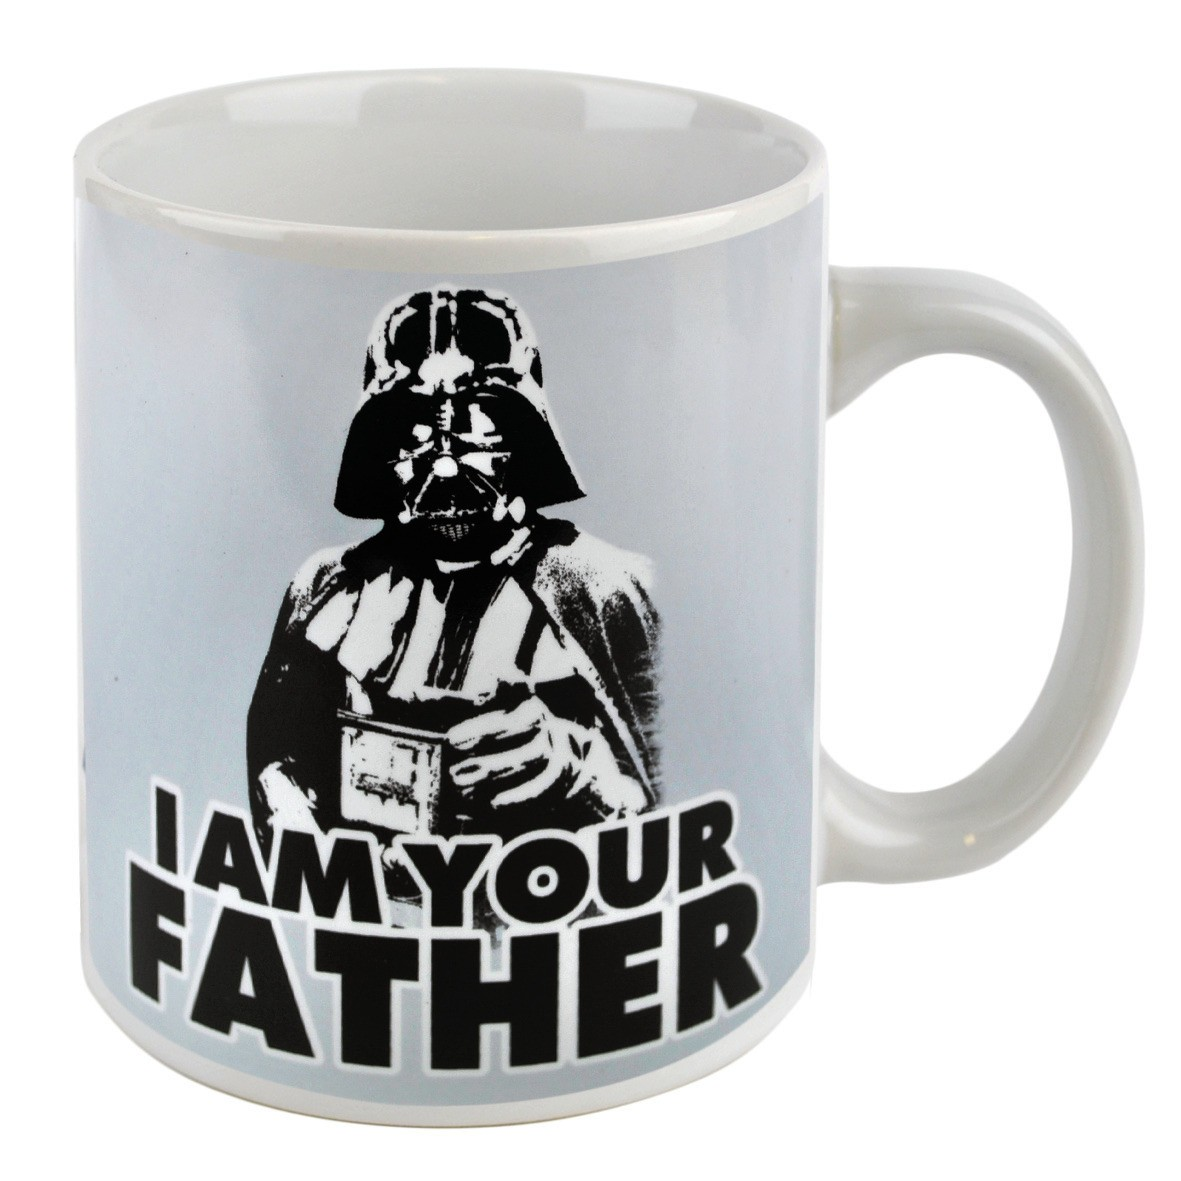 new star wars i am your father boxed mug retro coffee cup. Black Bedroom Furniture Sets. Home Design Ideas